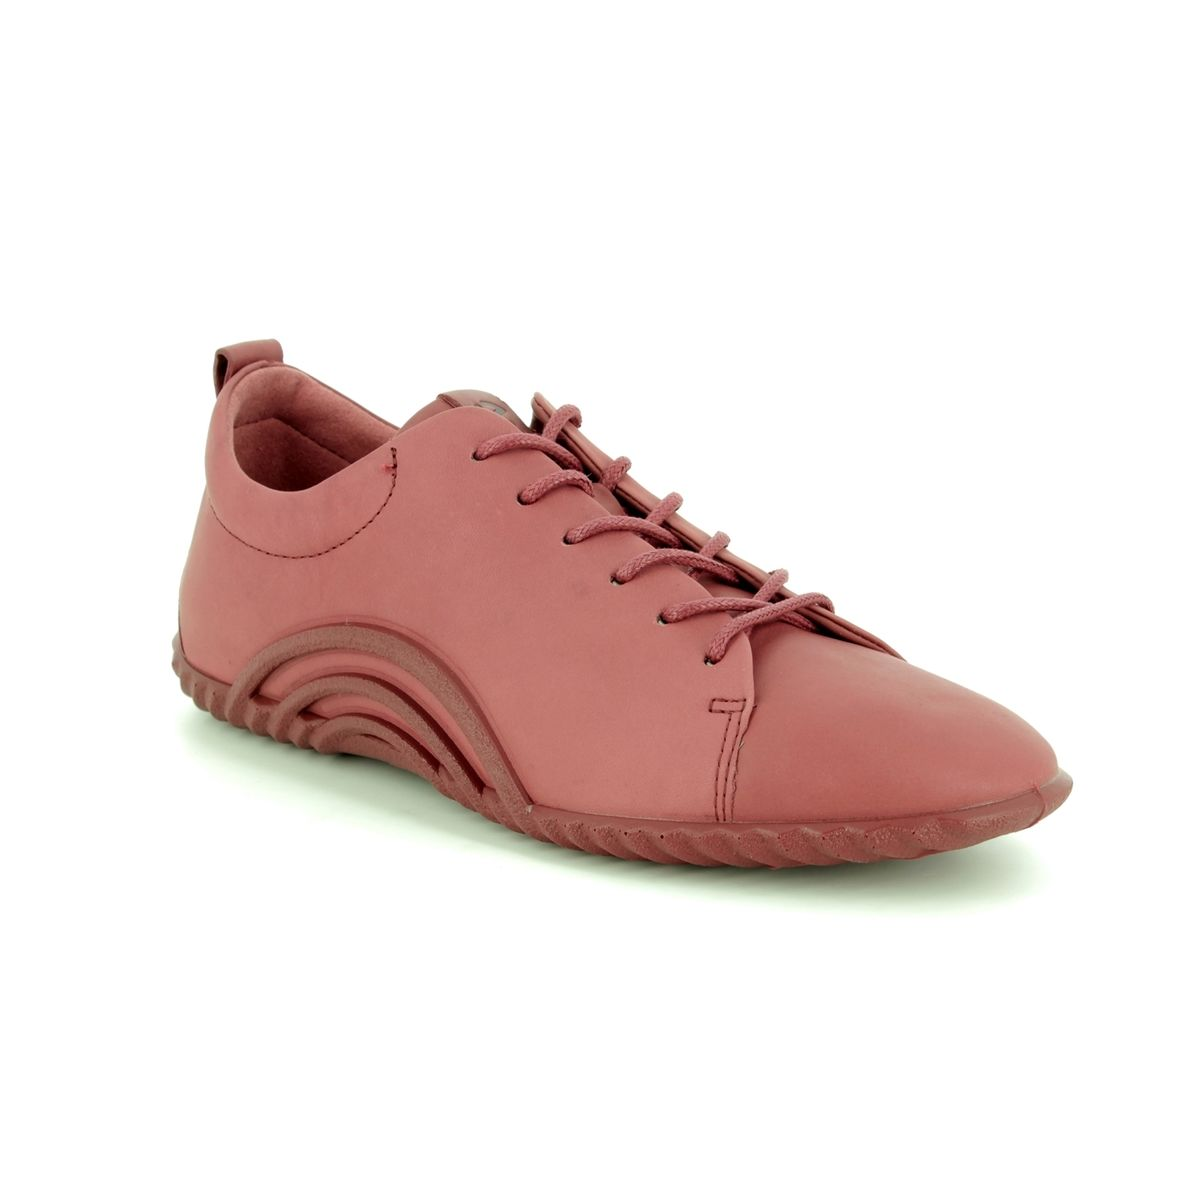 ECCO Lacing Shoes - Red leather - 206113 01249 VIBRATION LACE 69d17740bdc